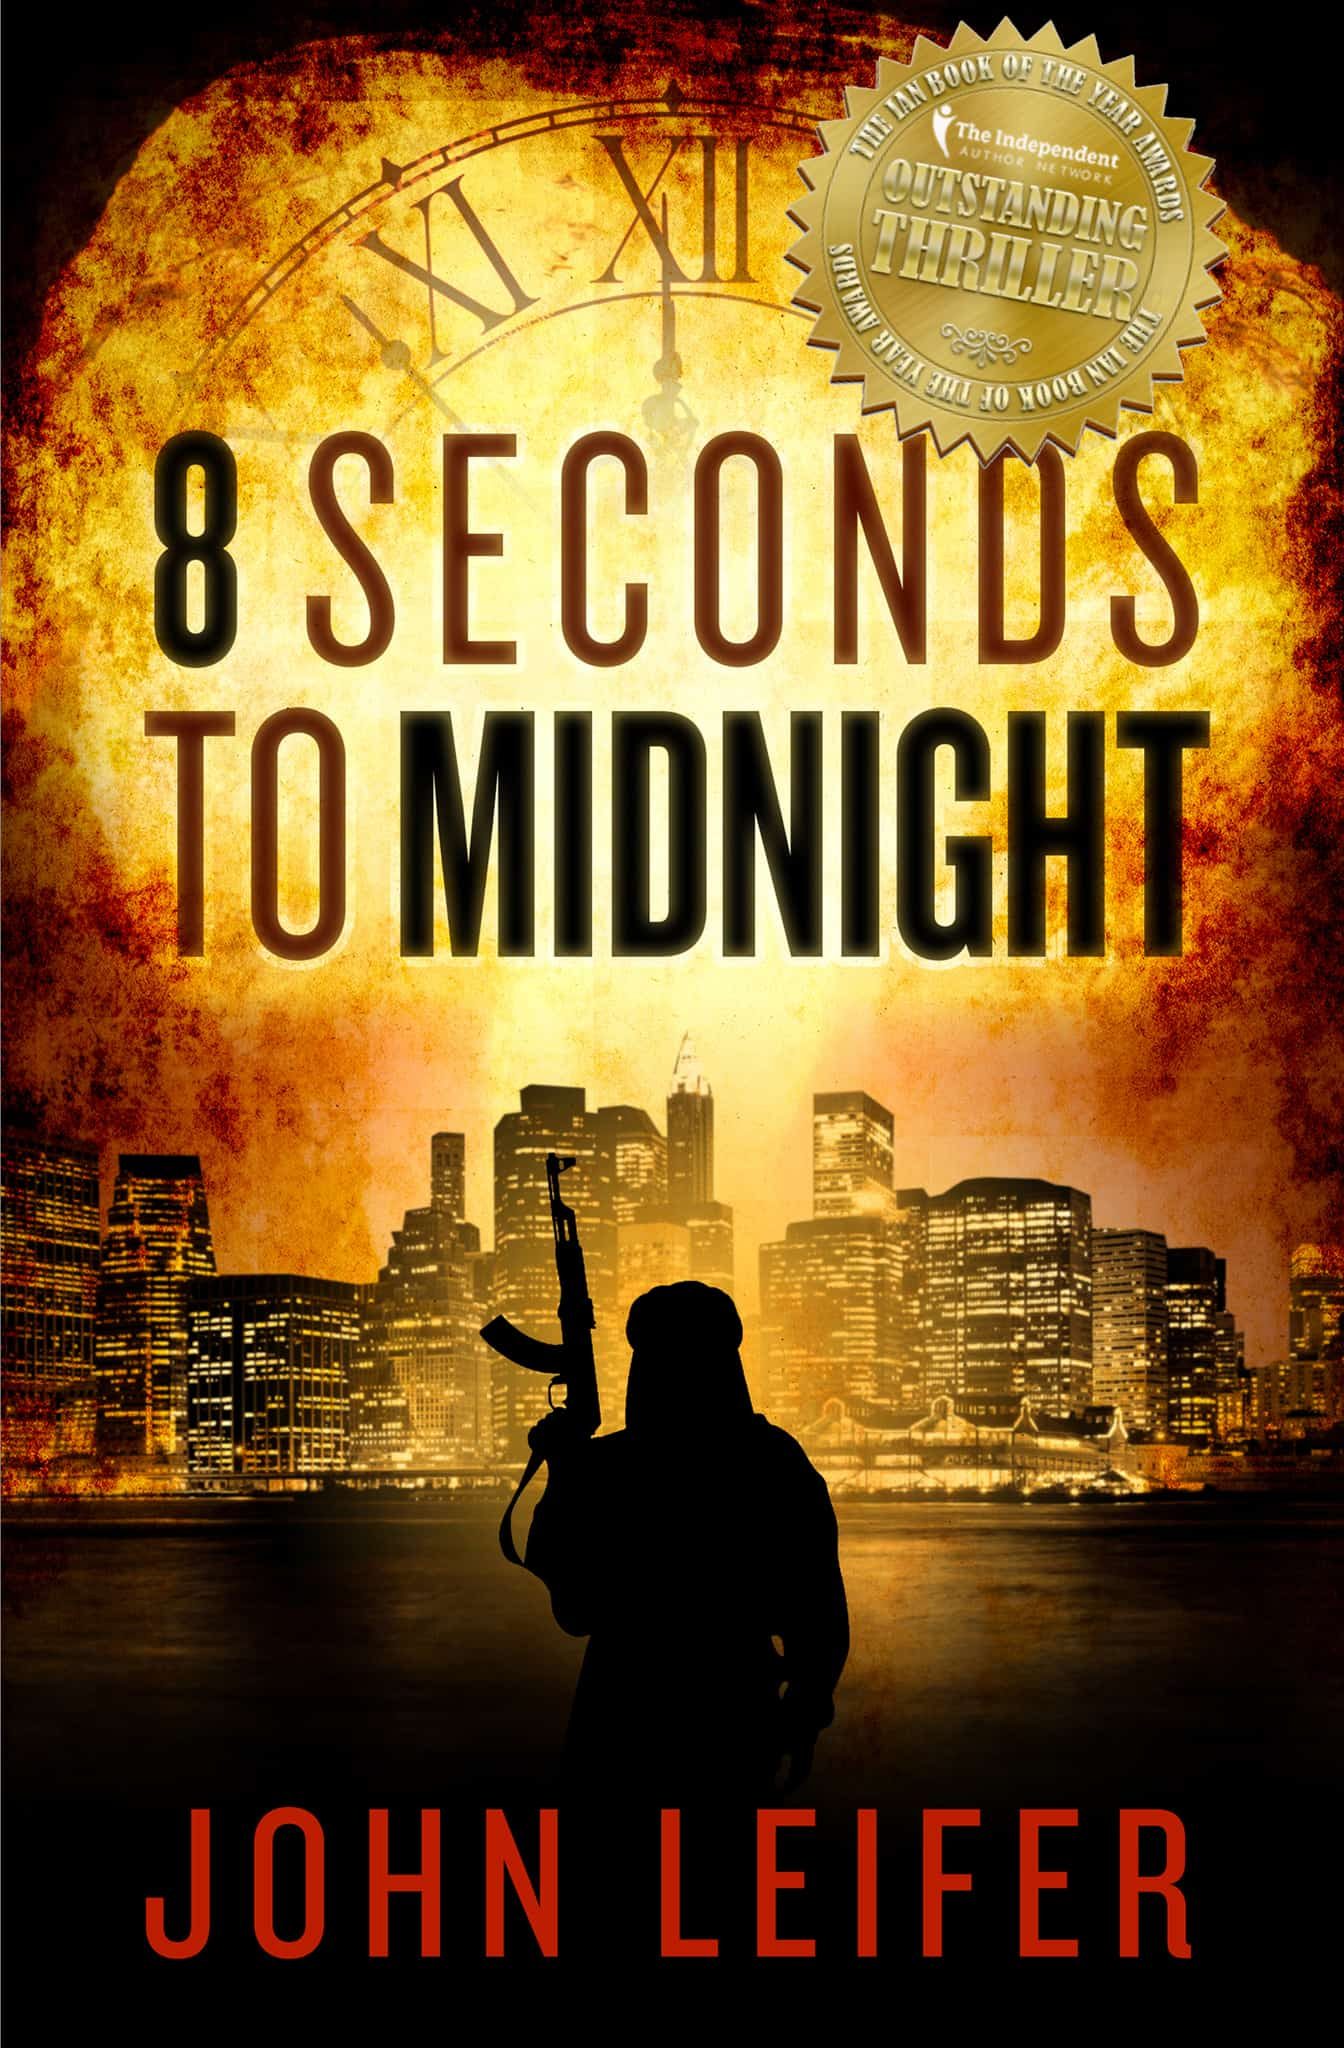 8 seconds to midnight outstanding thriller award - About